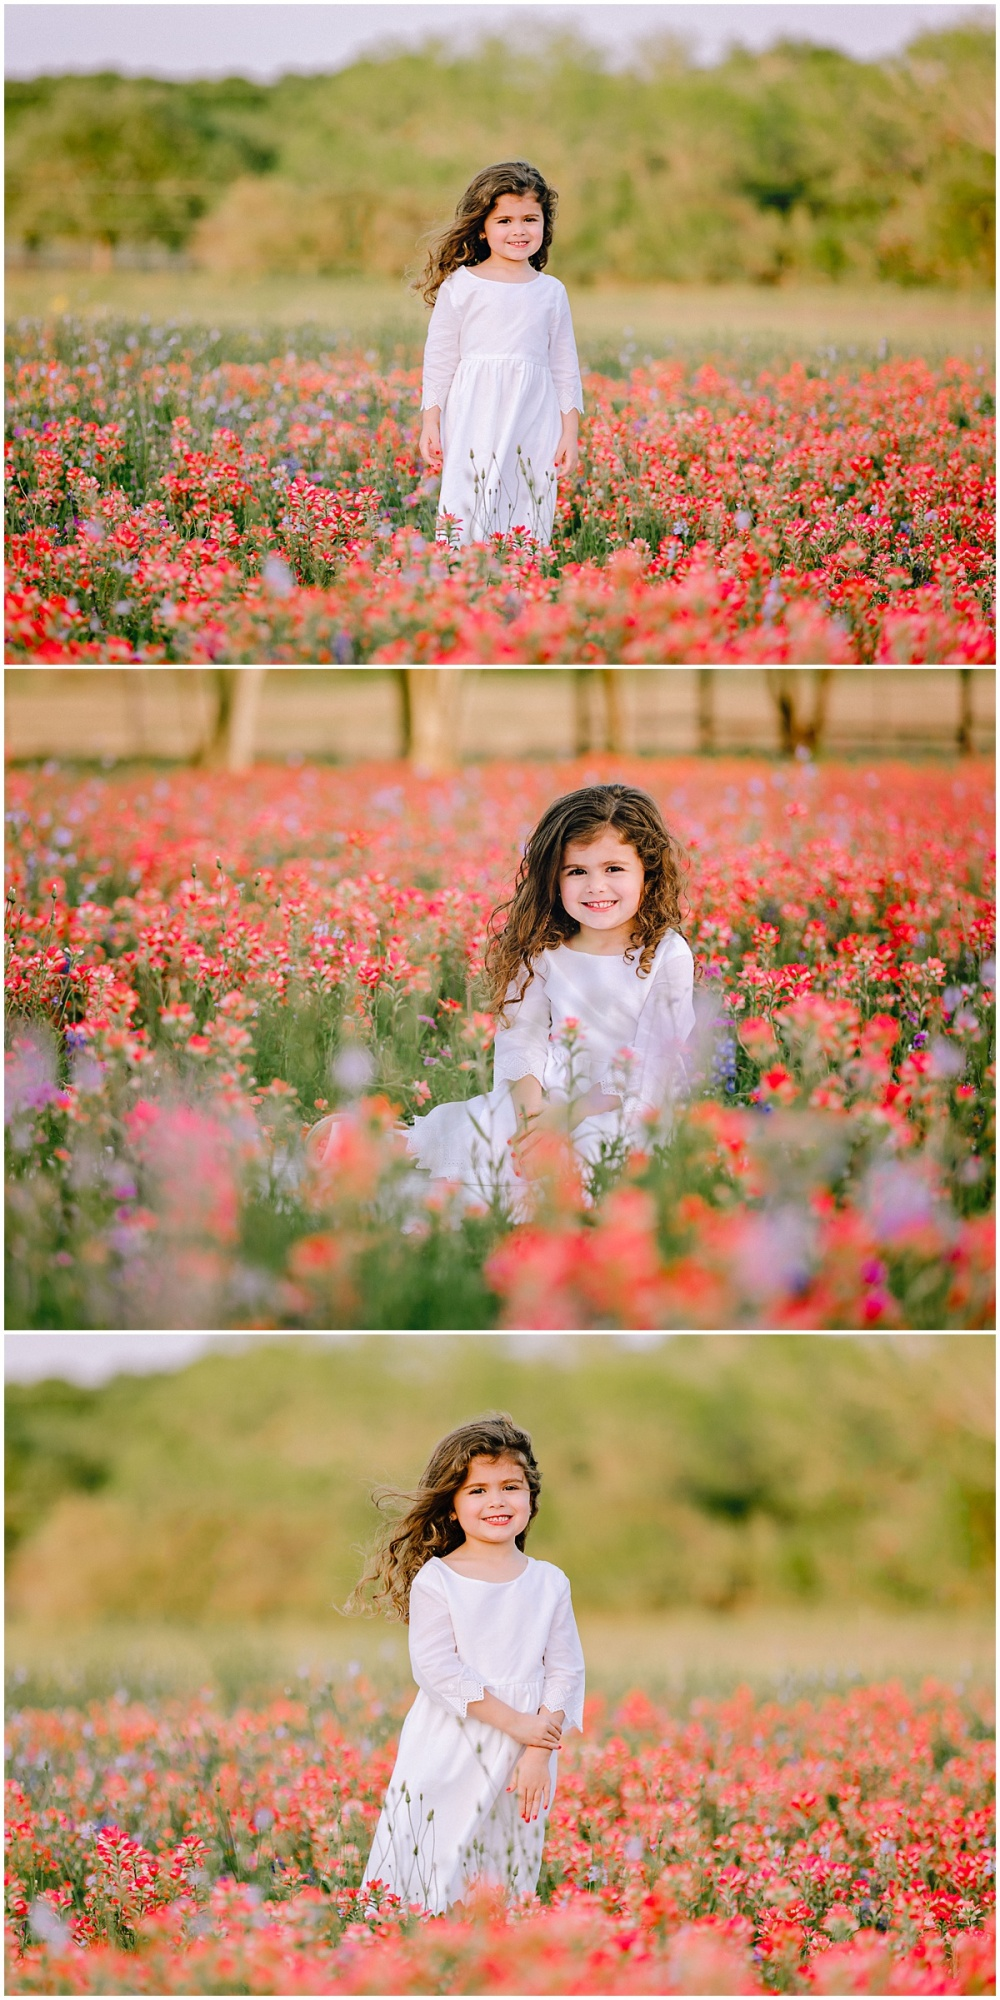 Wildflowers-Texas-Bluebonnets-Spring-Birthday-Photo-Session-Kids-Carly-Barton-Photography_0001.jpg